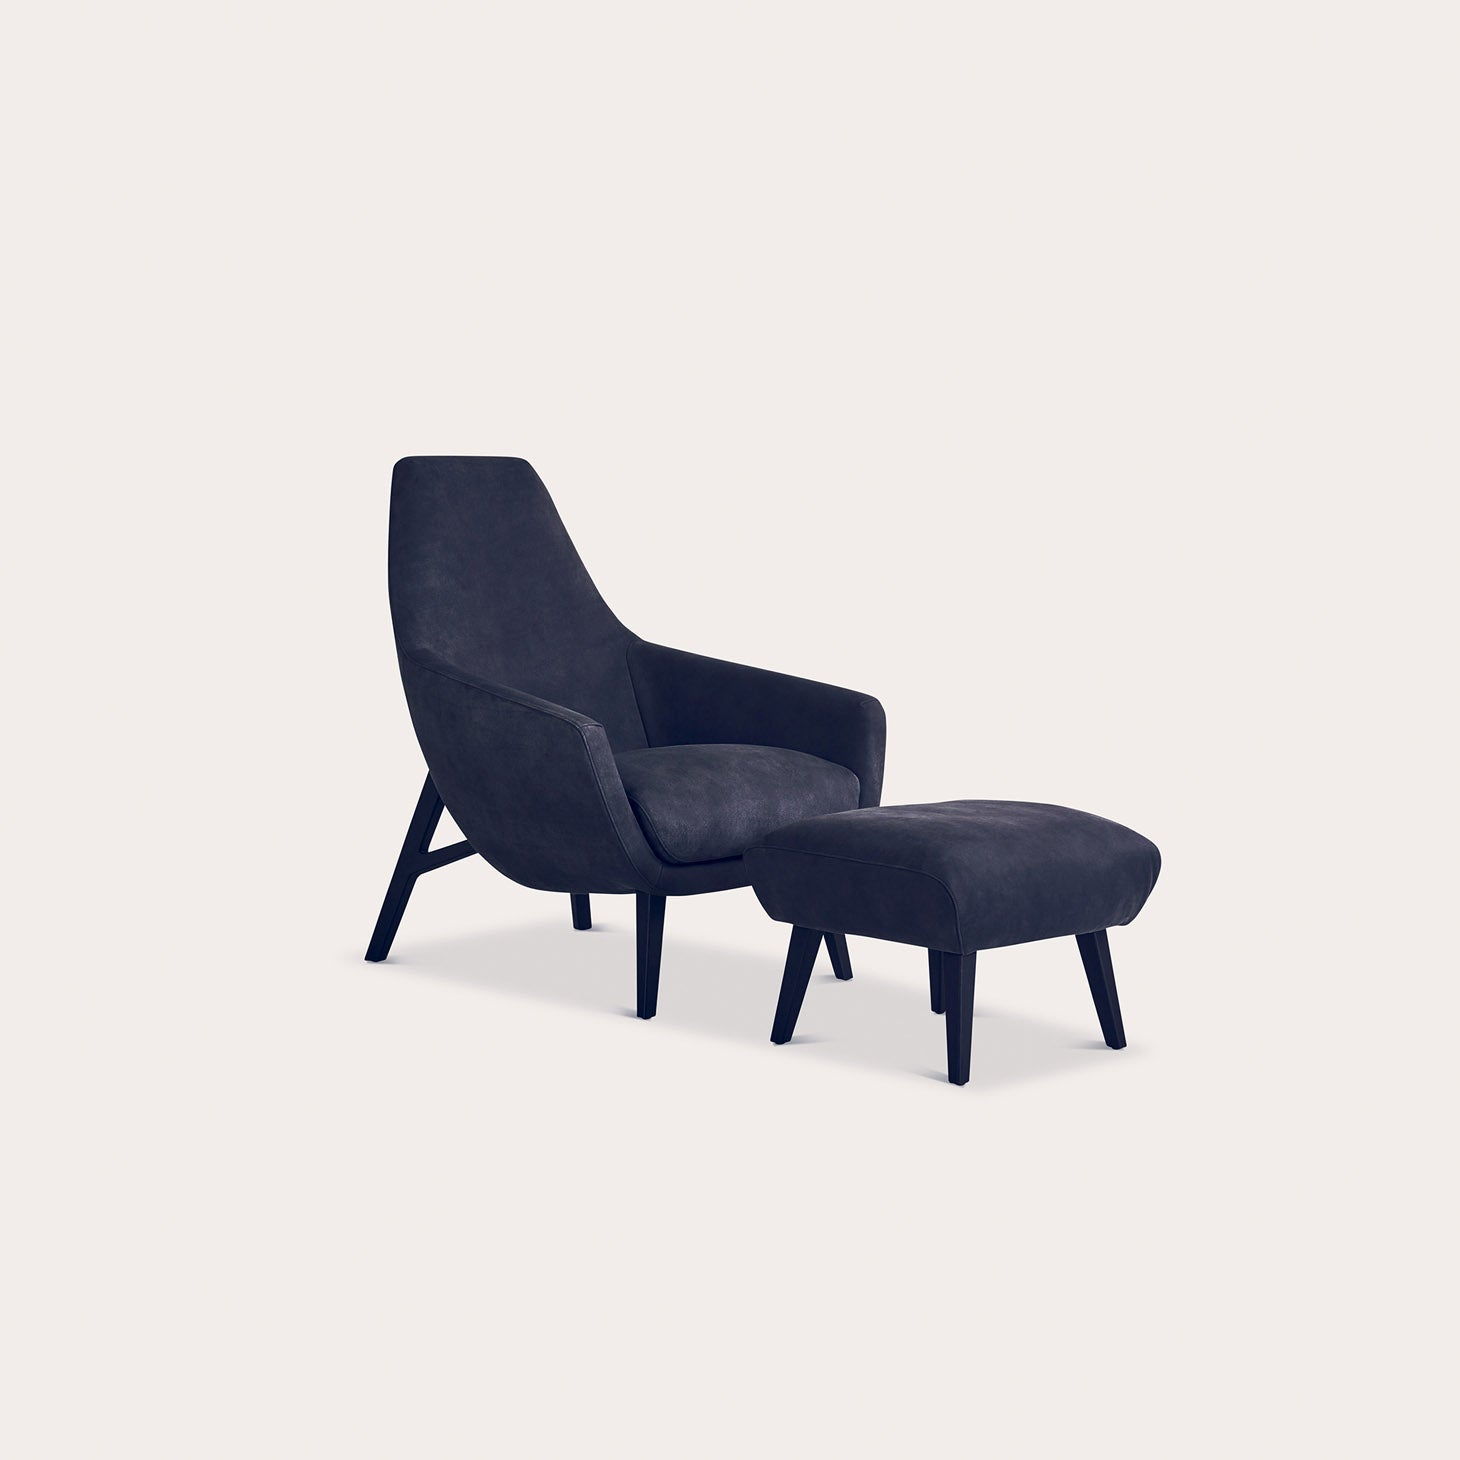 Enzo Seating Geert Koster Designer Furniture Sku: 134-240-10070